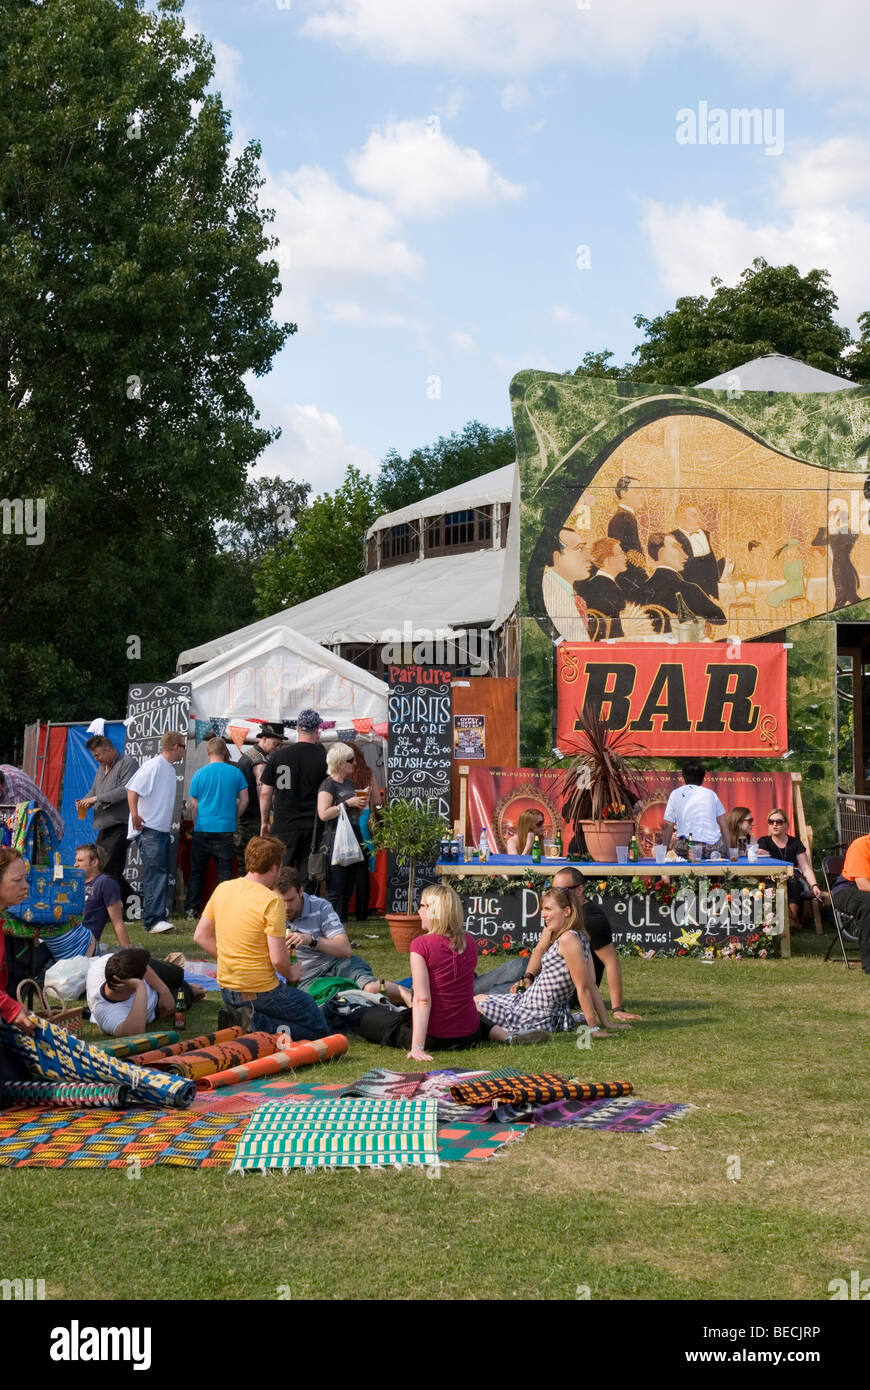 Bar at Paradise Gardens Festival in Victoria Park in Hackney, East London England UK 2009 - Stock Image